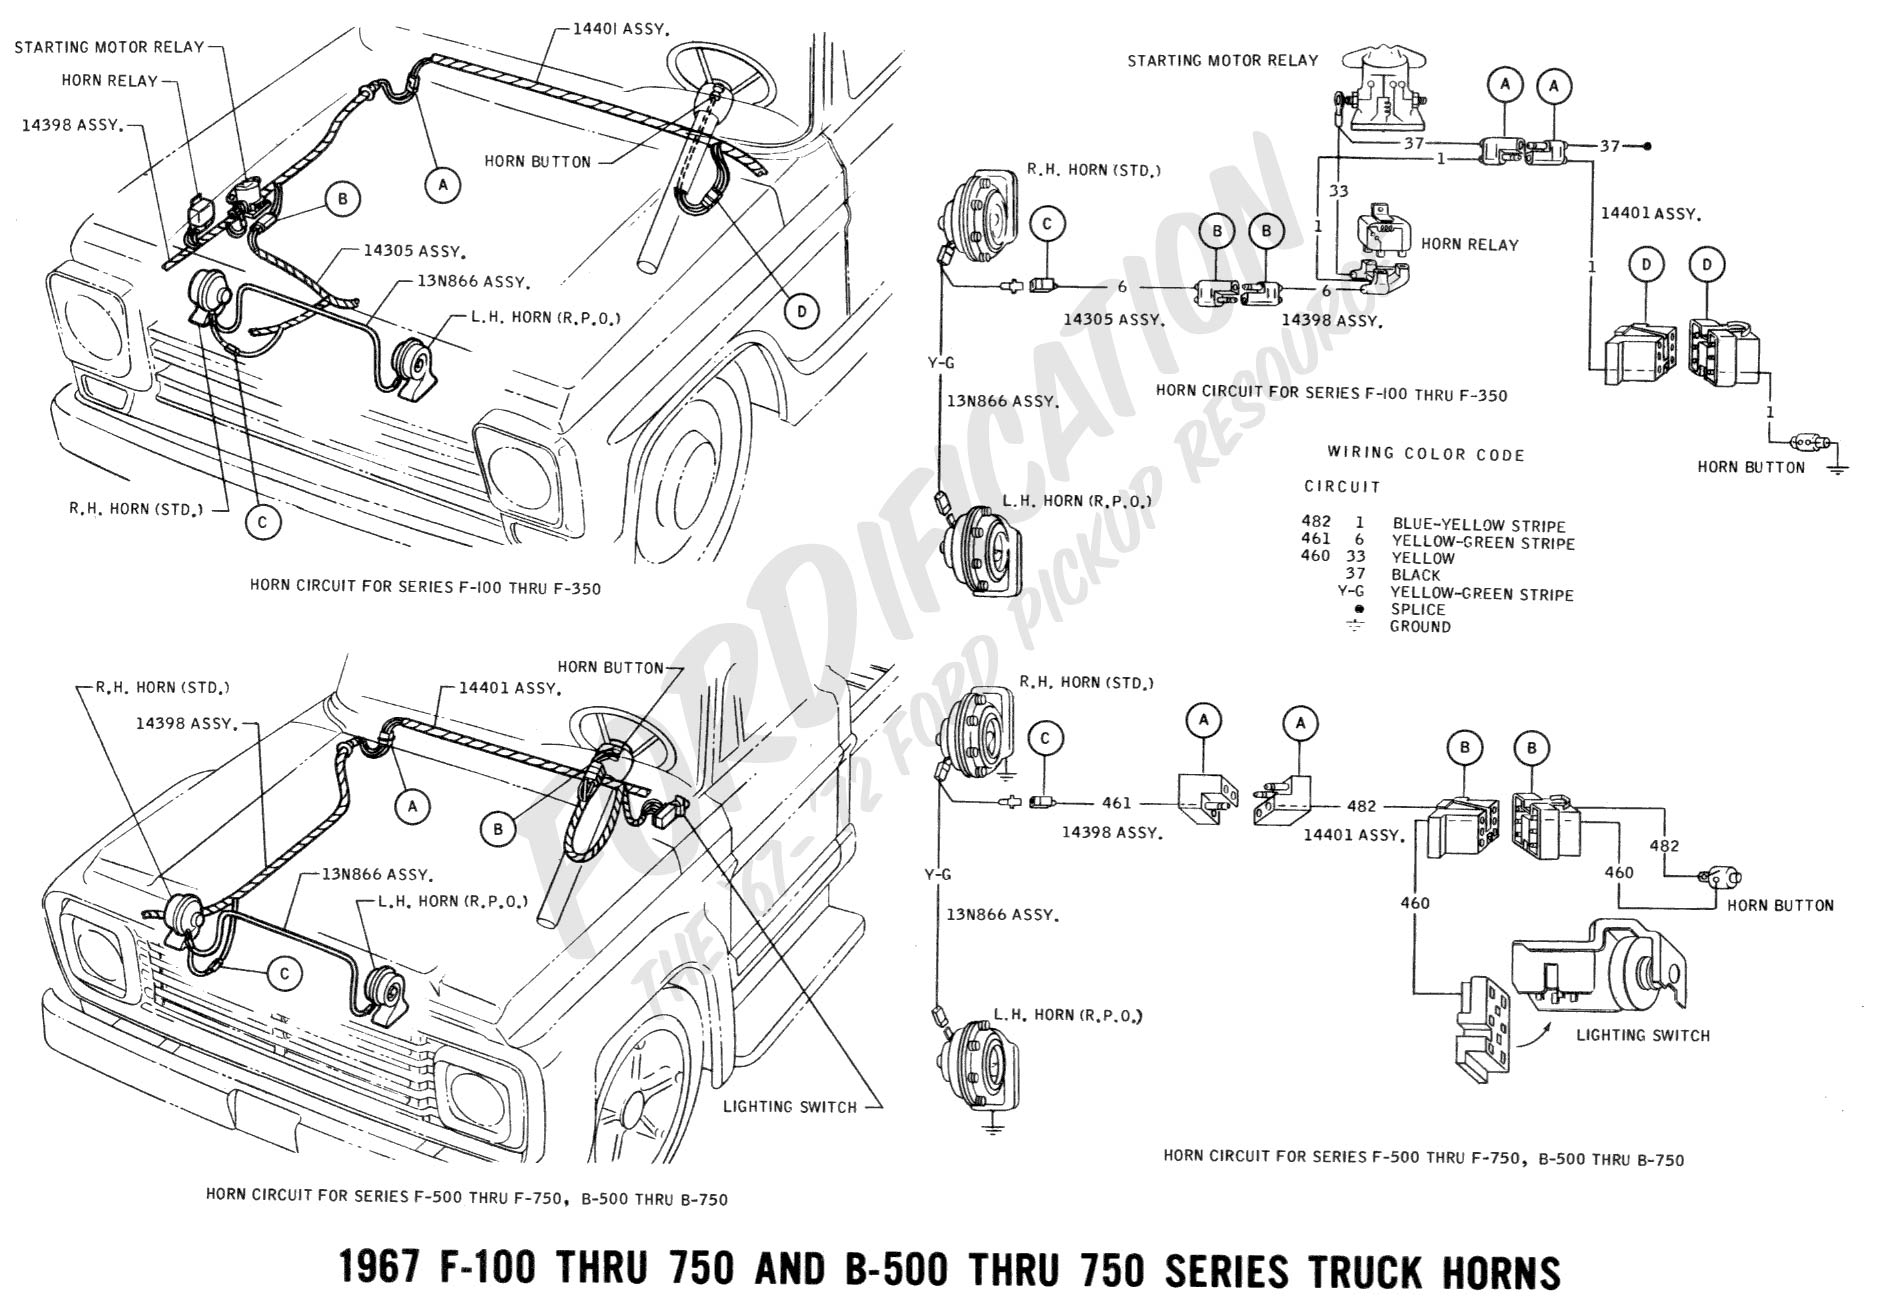 1981 Corvette Horn Diagram Wiring Schematic Schematics 1975 Electrical Ford Truck Technical Drawings And Section H Rh Fordification Com 1978 Fuse Box